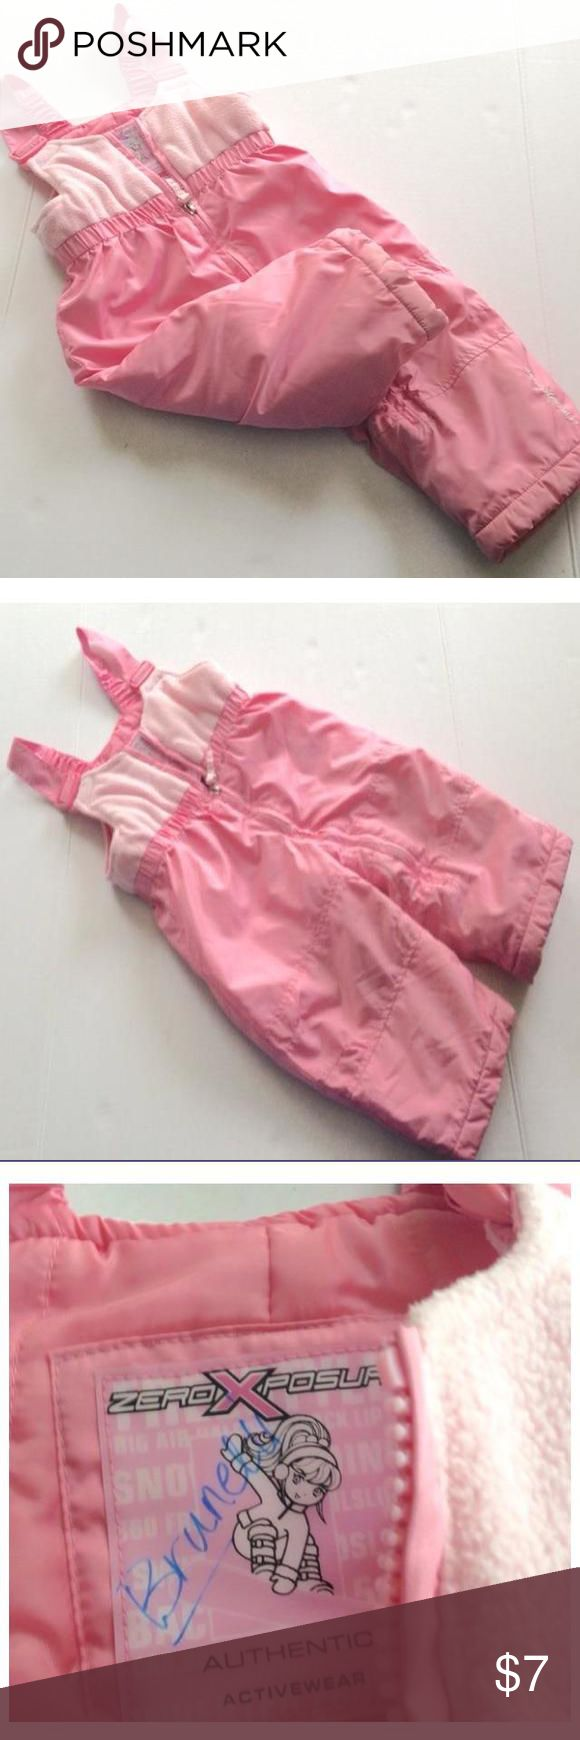 Toddler girls pink 2 toned bib snow pants pink snow pants. Girls size 12 months. Good condition. Name printed on tag but good condition. Dresses #Toddlersnowpantsgirl